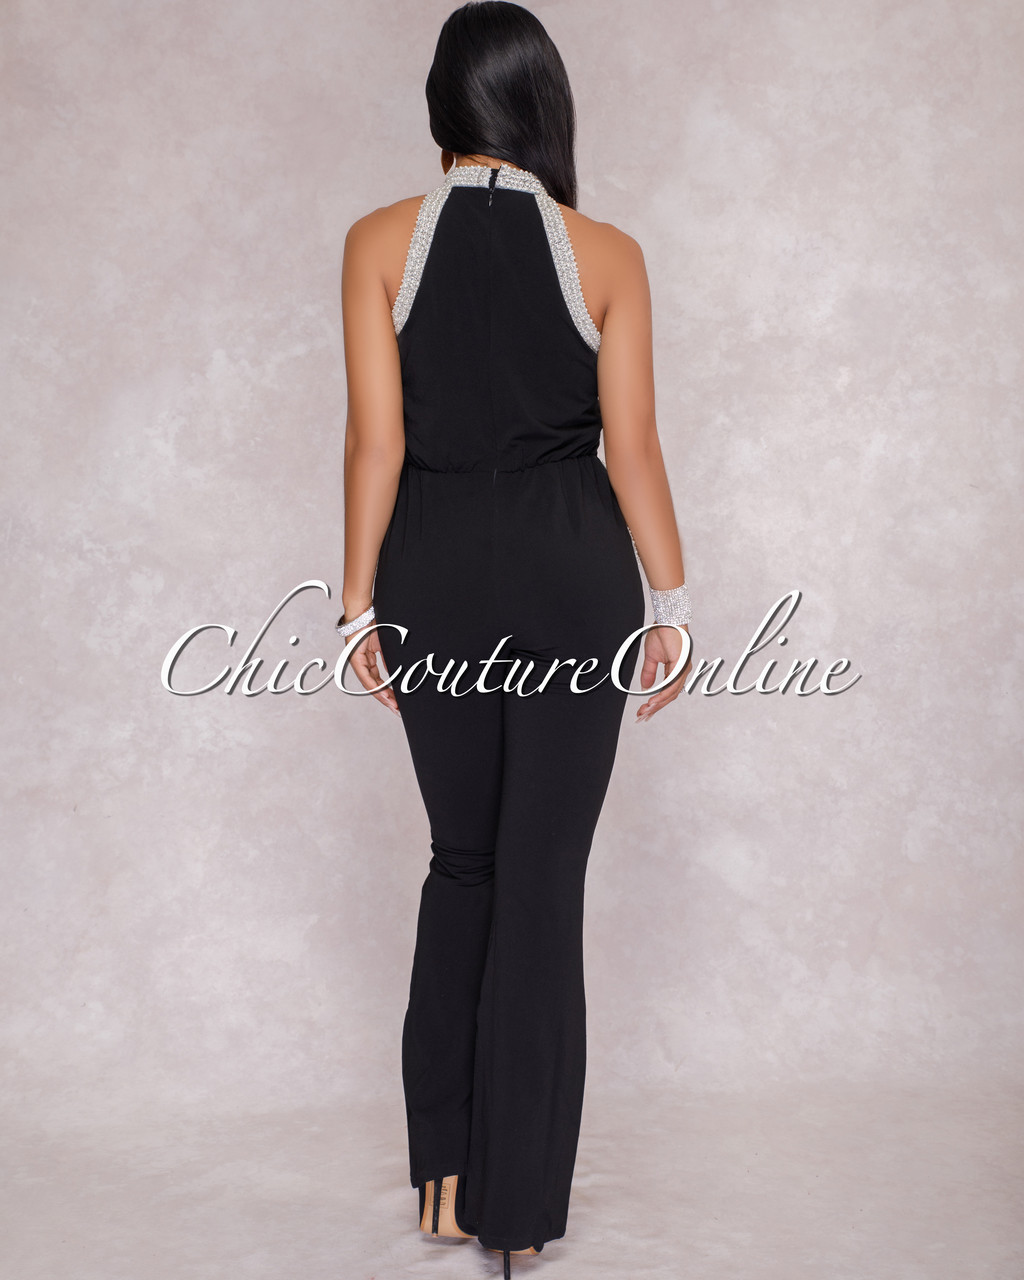 1d1f13ee6a7e Fonda Black Pearl Embellished Jumpsuit. Price   80.00. Image 1. Larger    More Photos